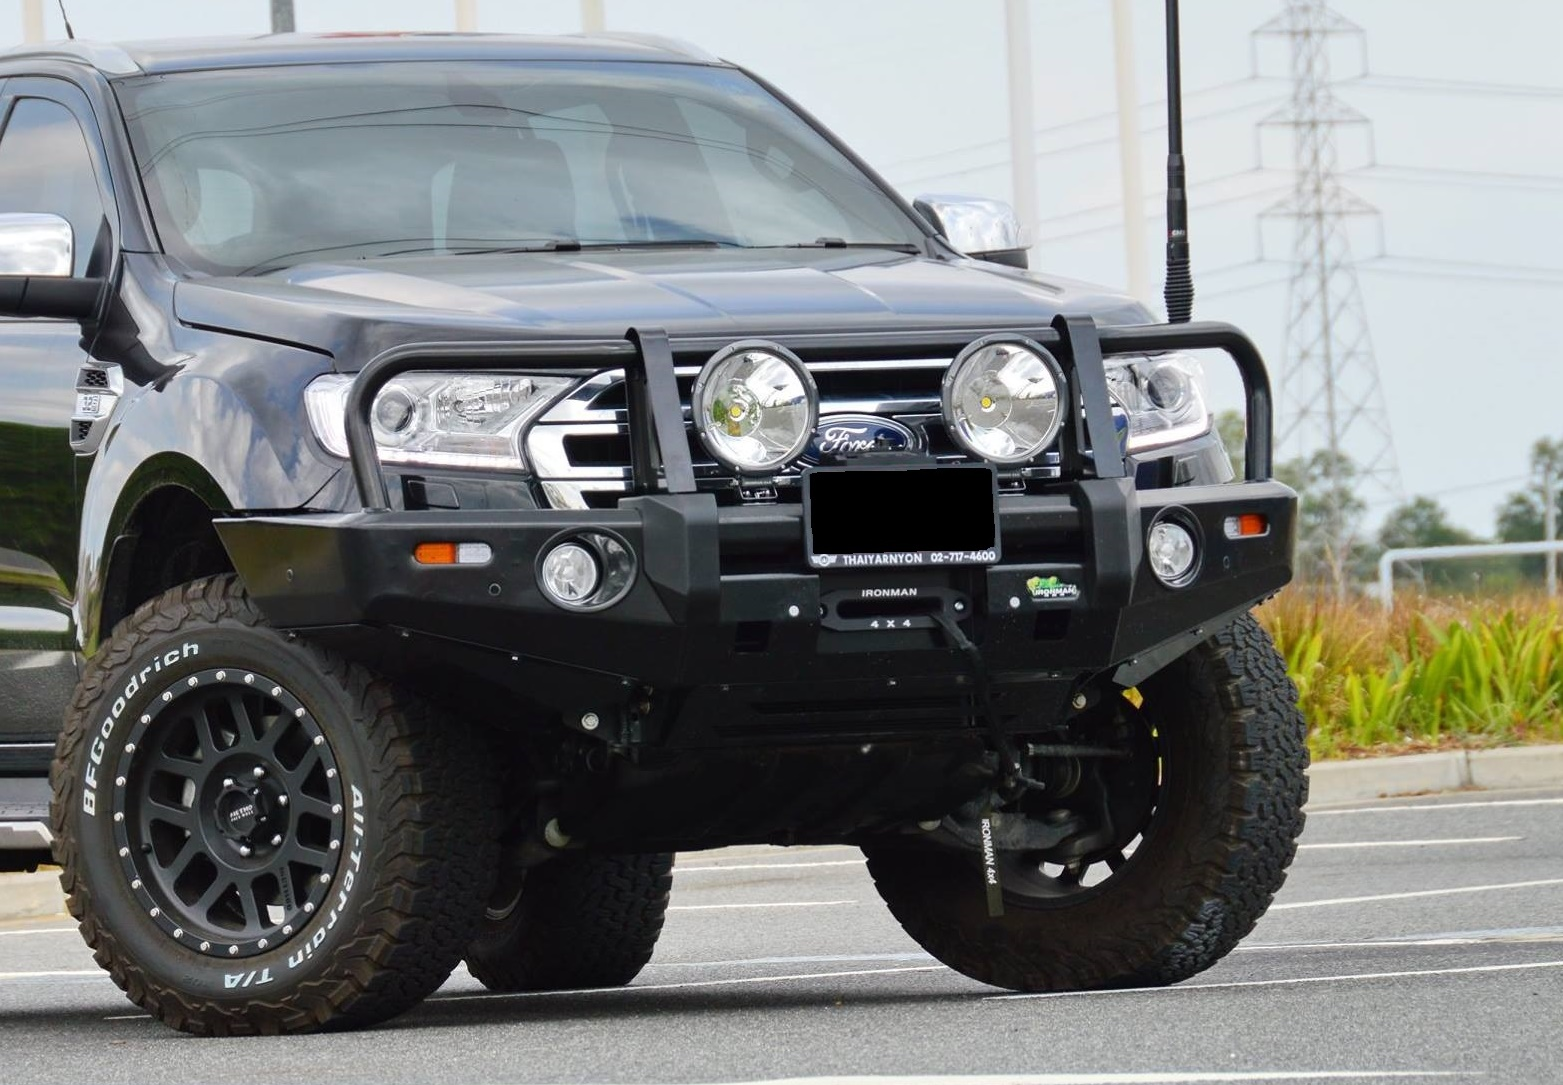 Ford Px Pxii Ranger Deluxe Commercial Bull Bar Ironman